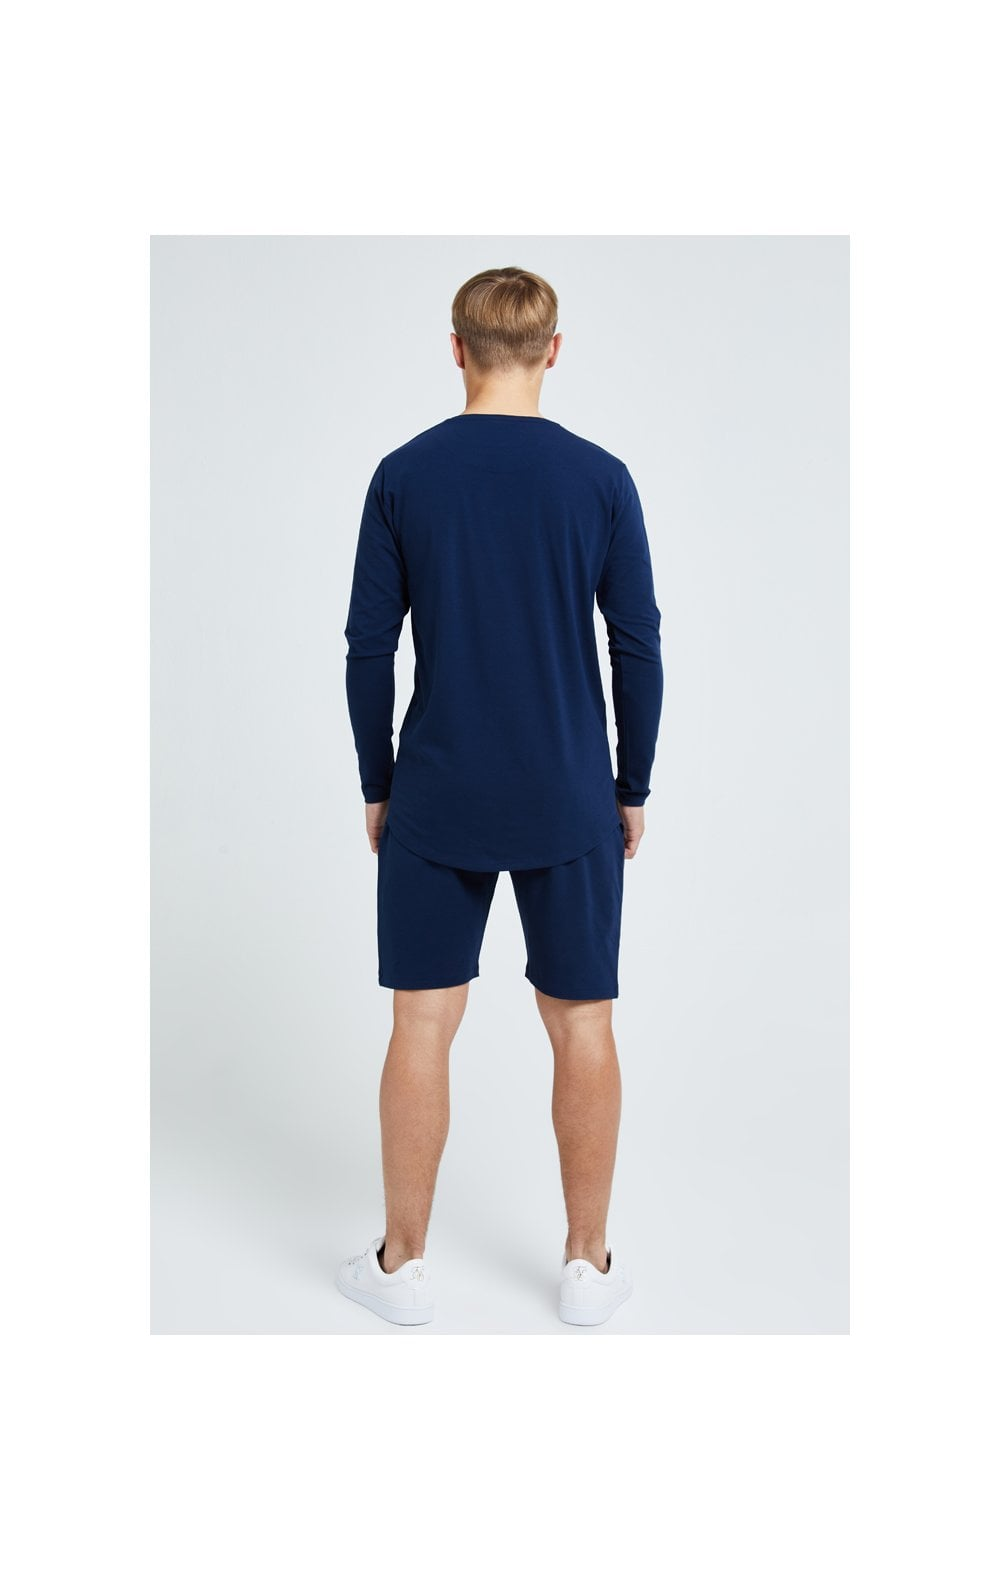 Illusive London Core Jersey Shorts - Navy (6)